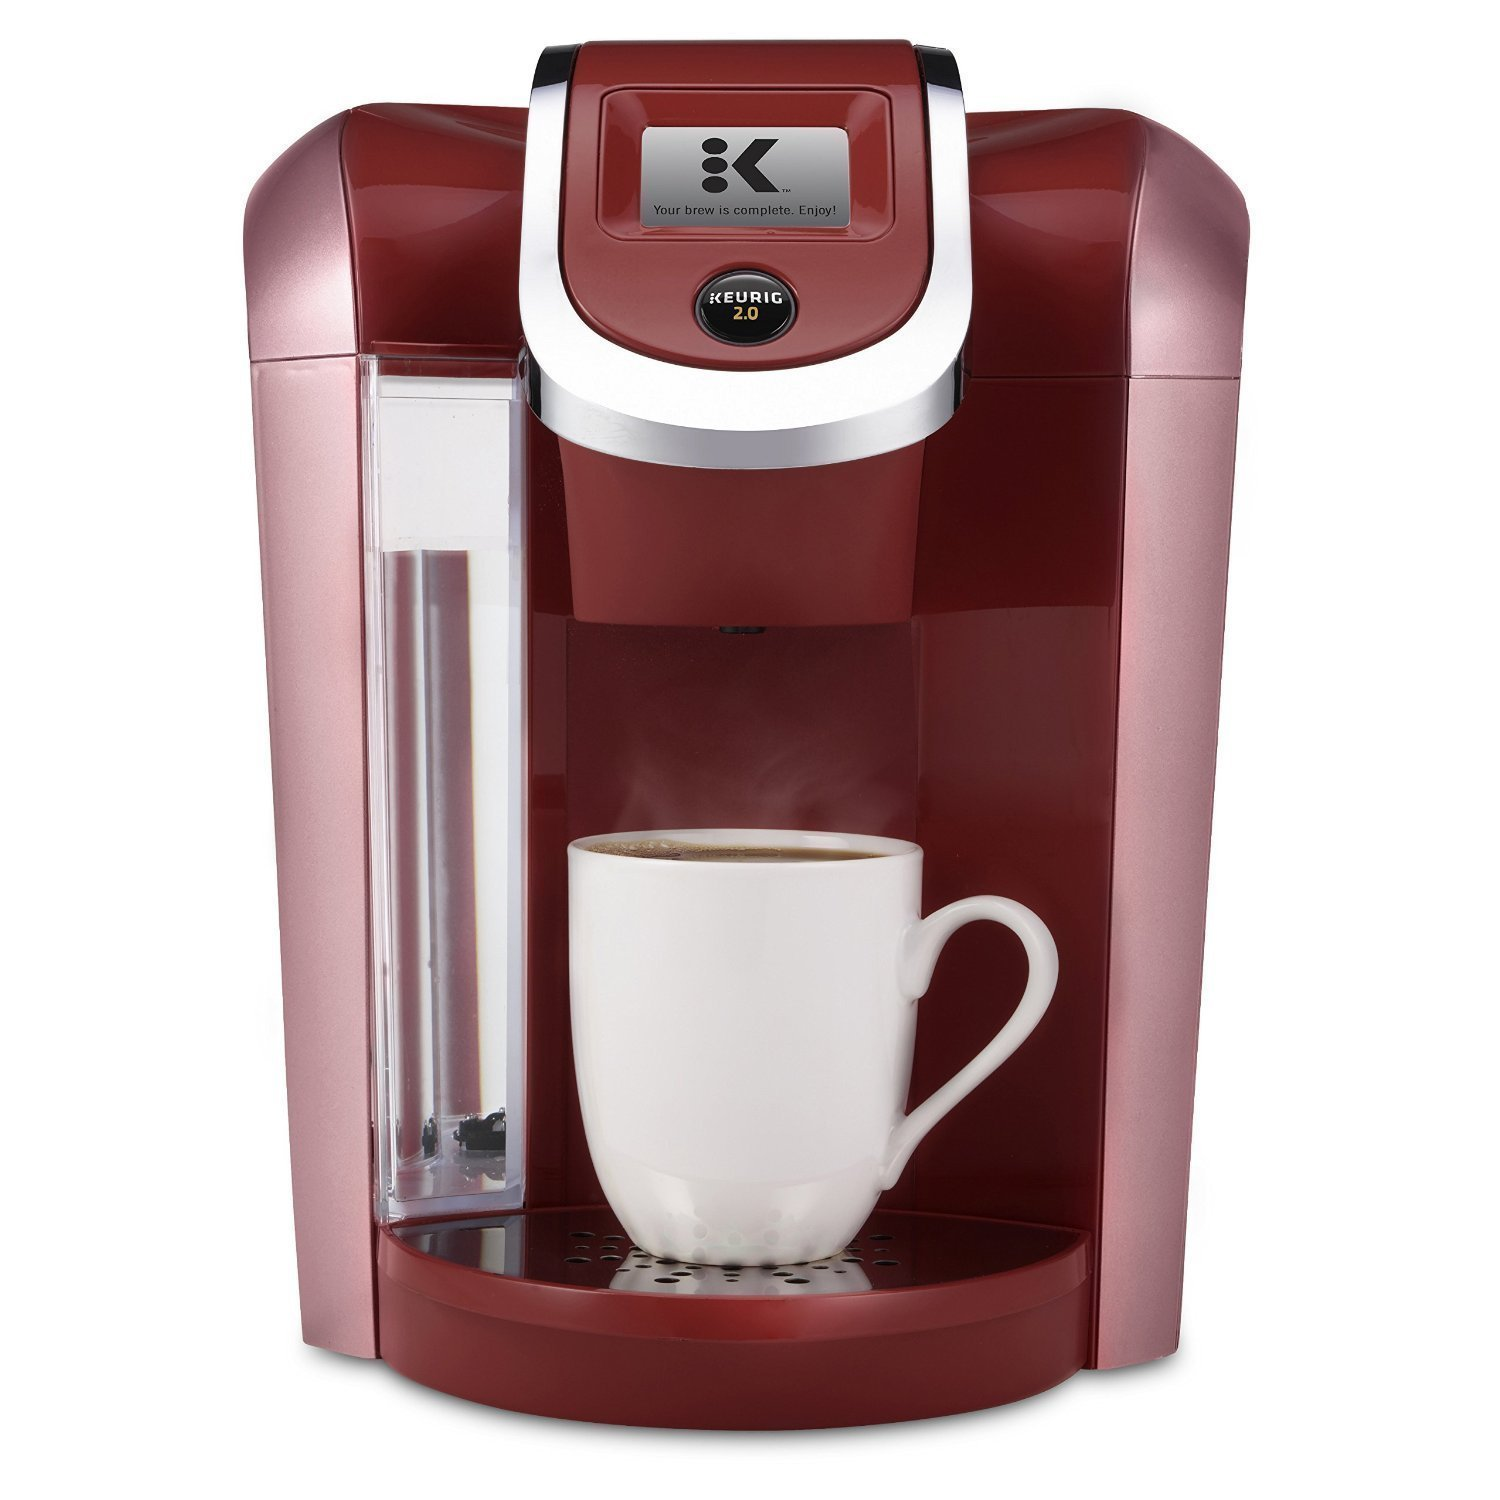 Keurig K475 Coffee Maker K-Cups Best Price - Keurig K475 Coffee Maker K-Cups Review